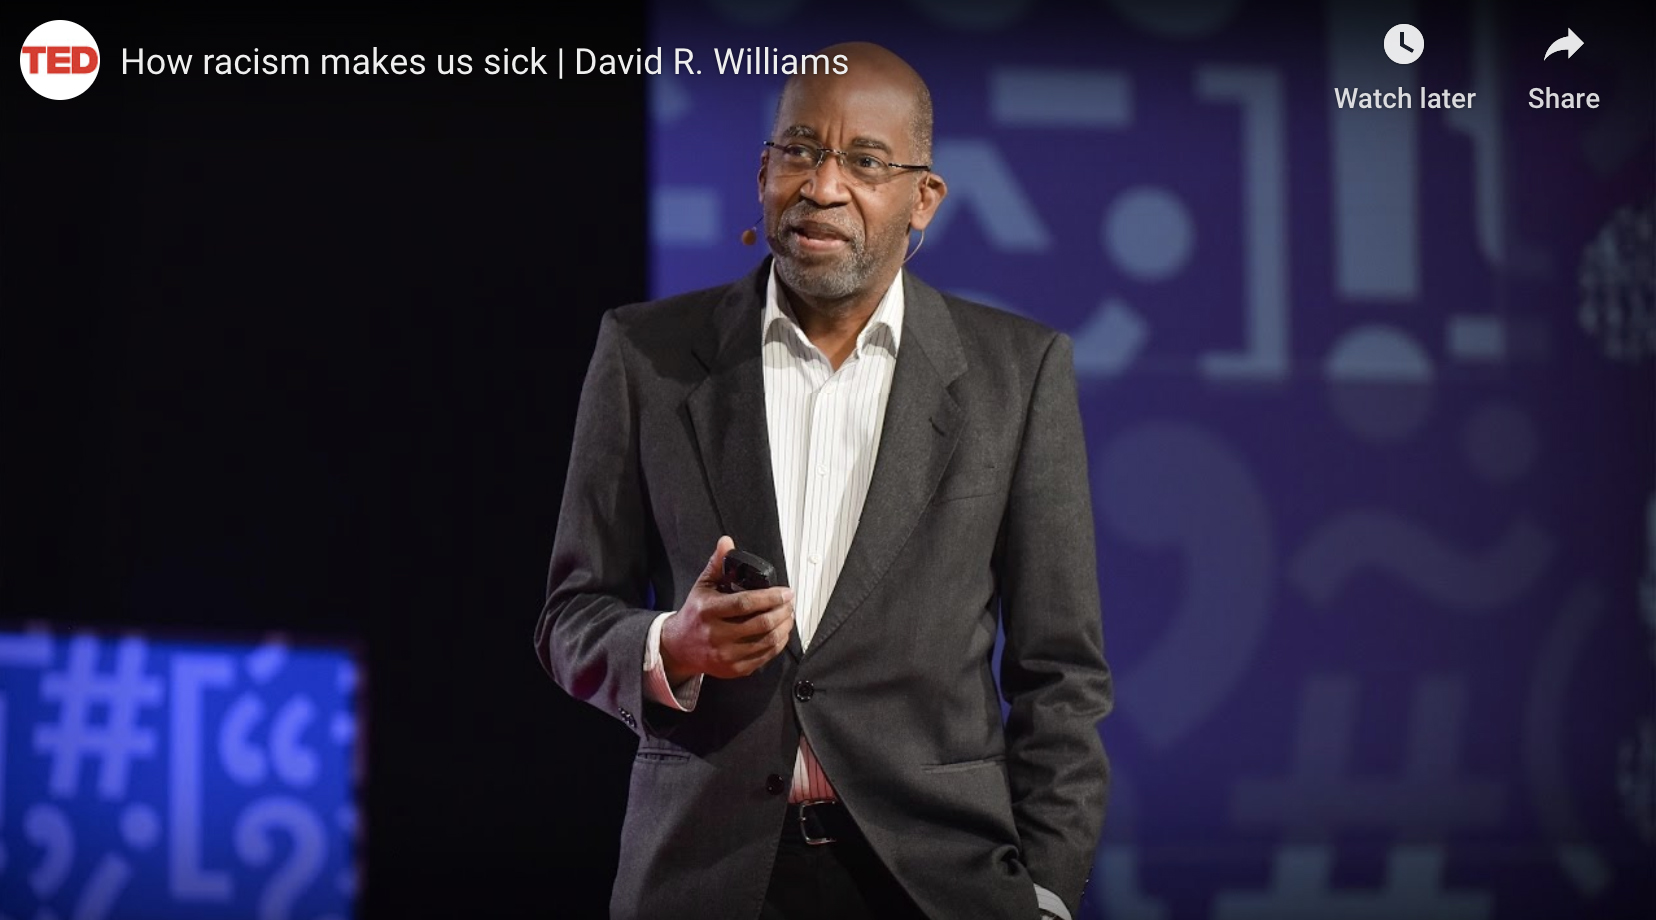 Dr. David Williams speaking at a TED Talk.